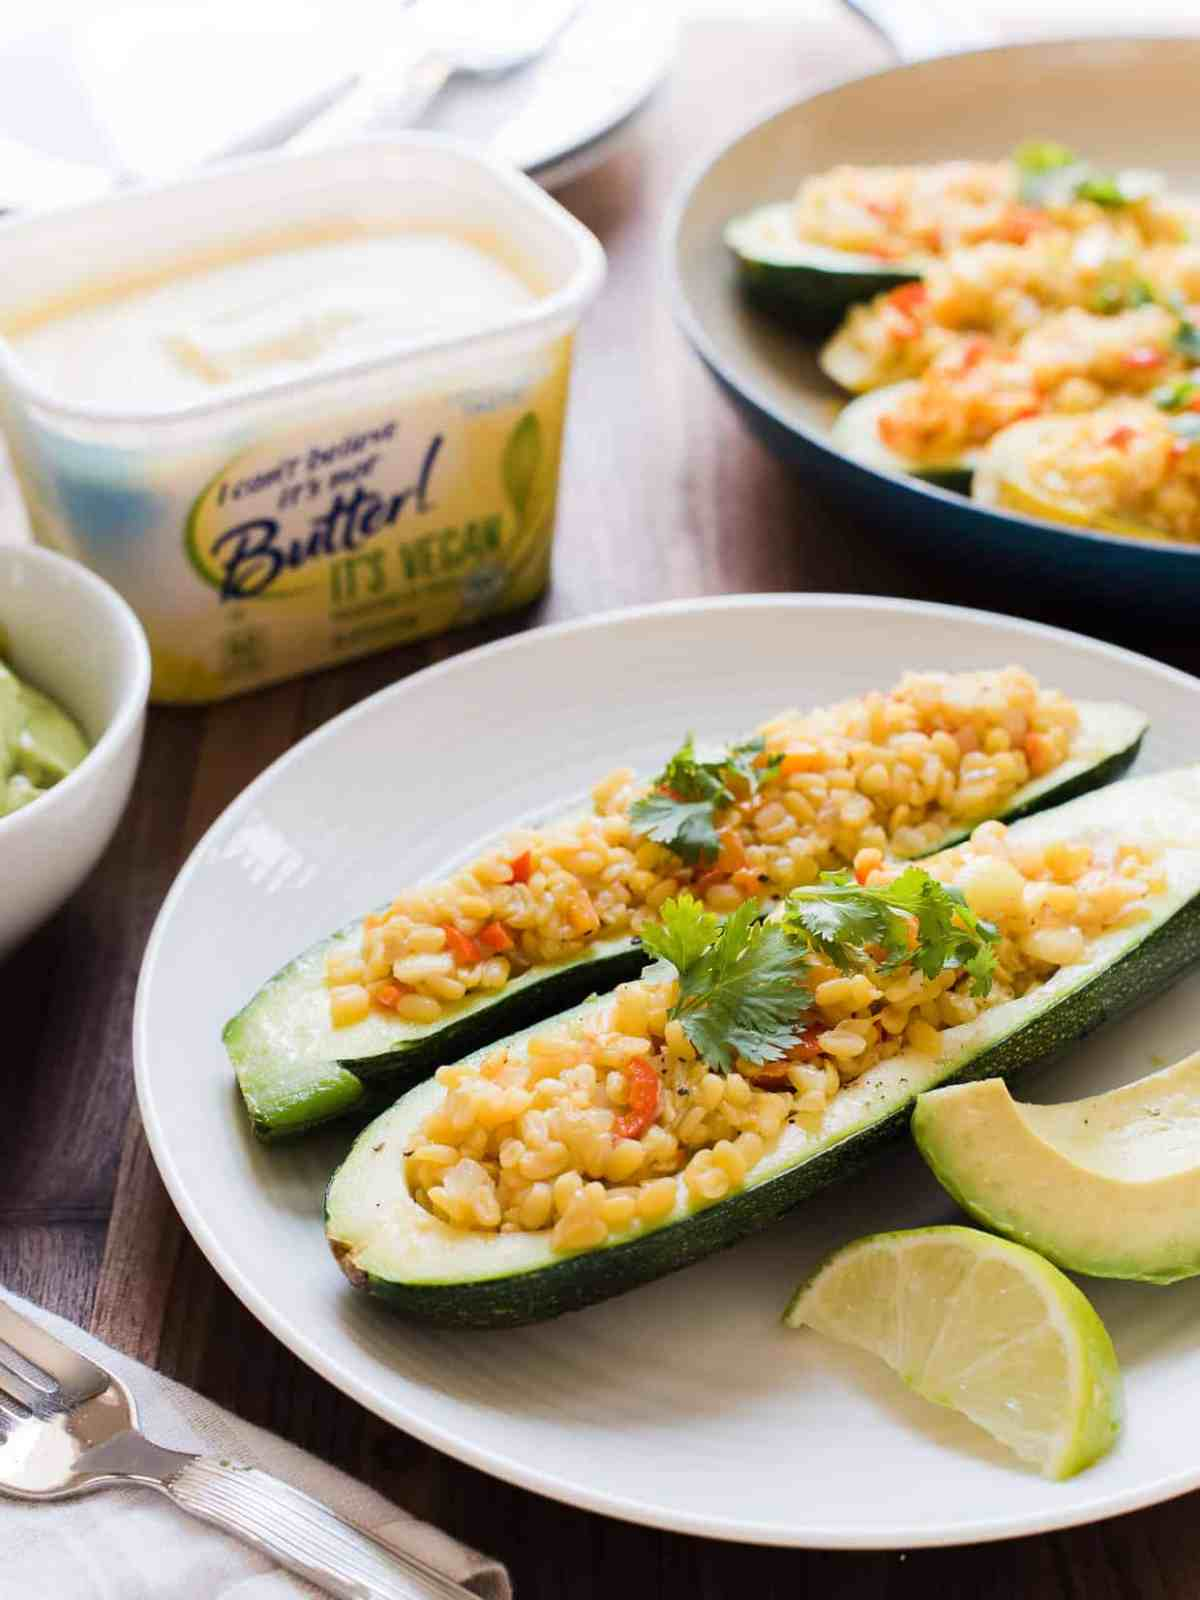 Stuffed yellow squash and zucchini with a tasty lentil filling served on a white plate.